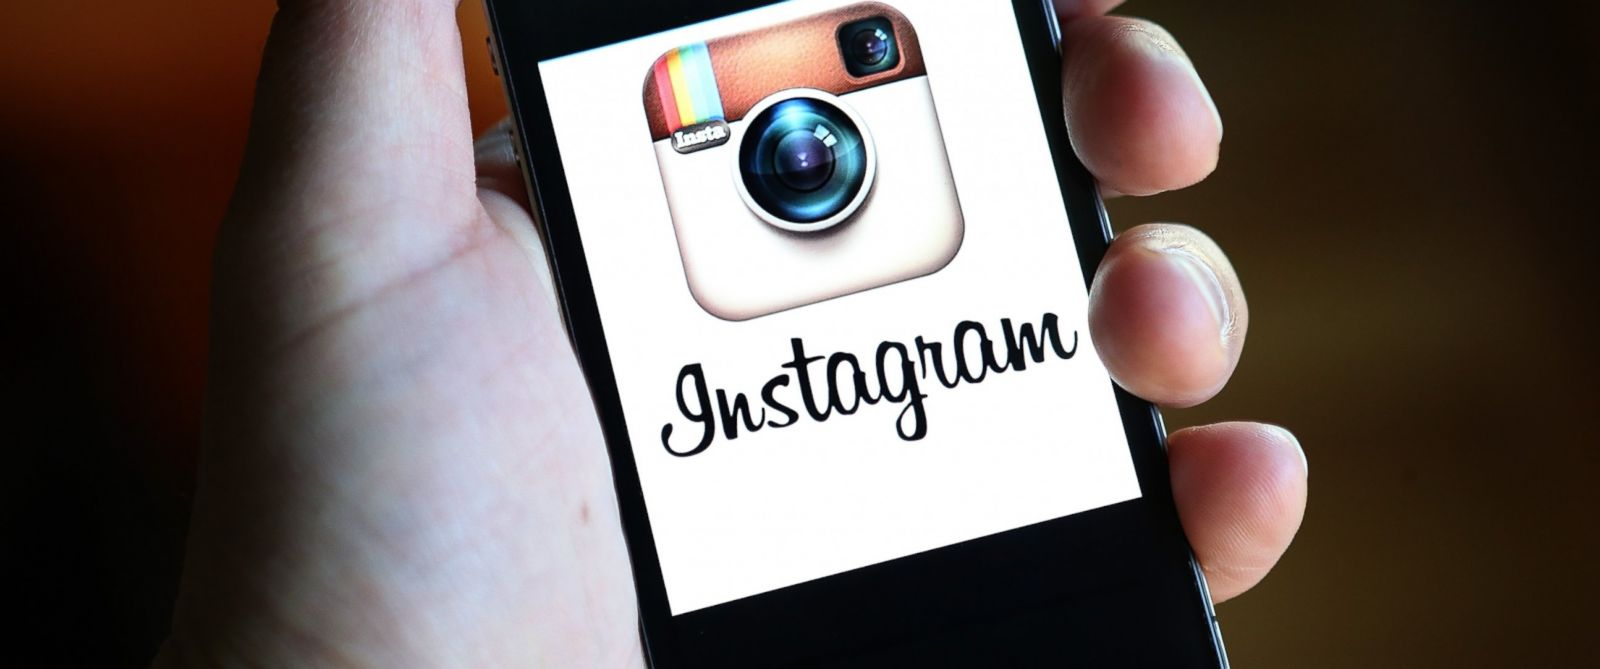 PHOTO: The Instagram logo is displayed on an Apple iPhone on Dec. 18, 2012 in Fairfax, Calif.